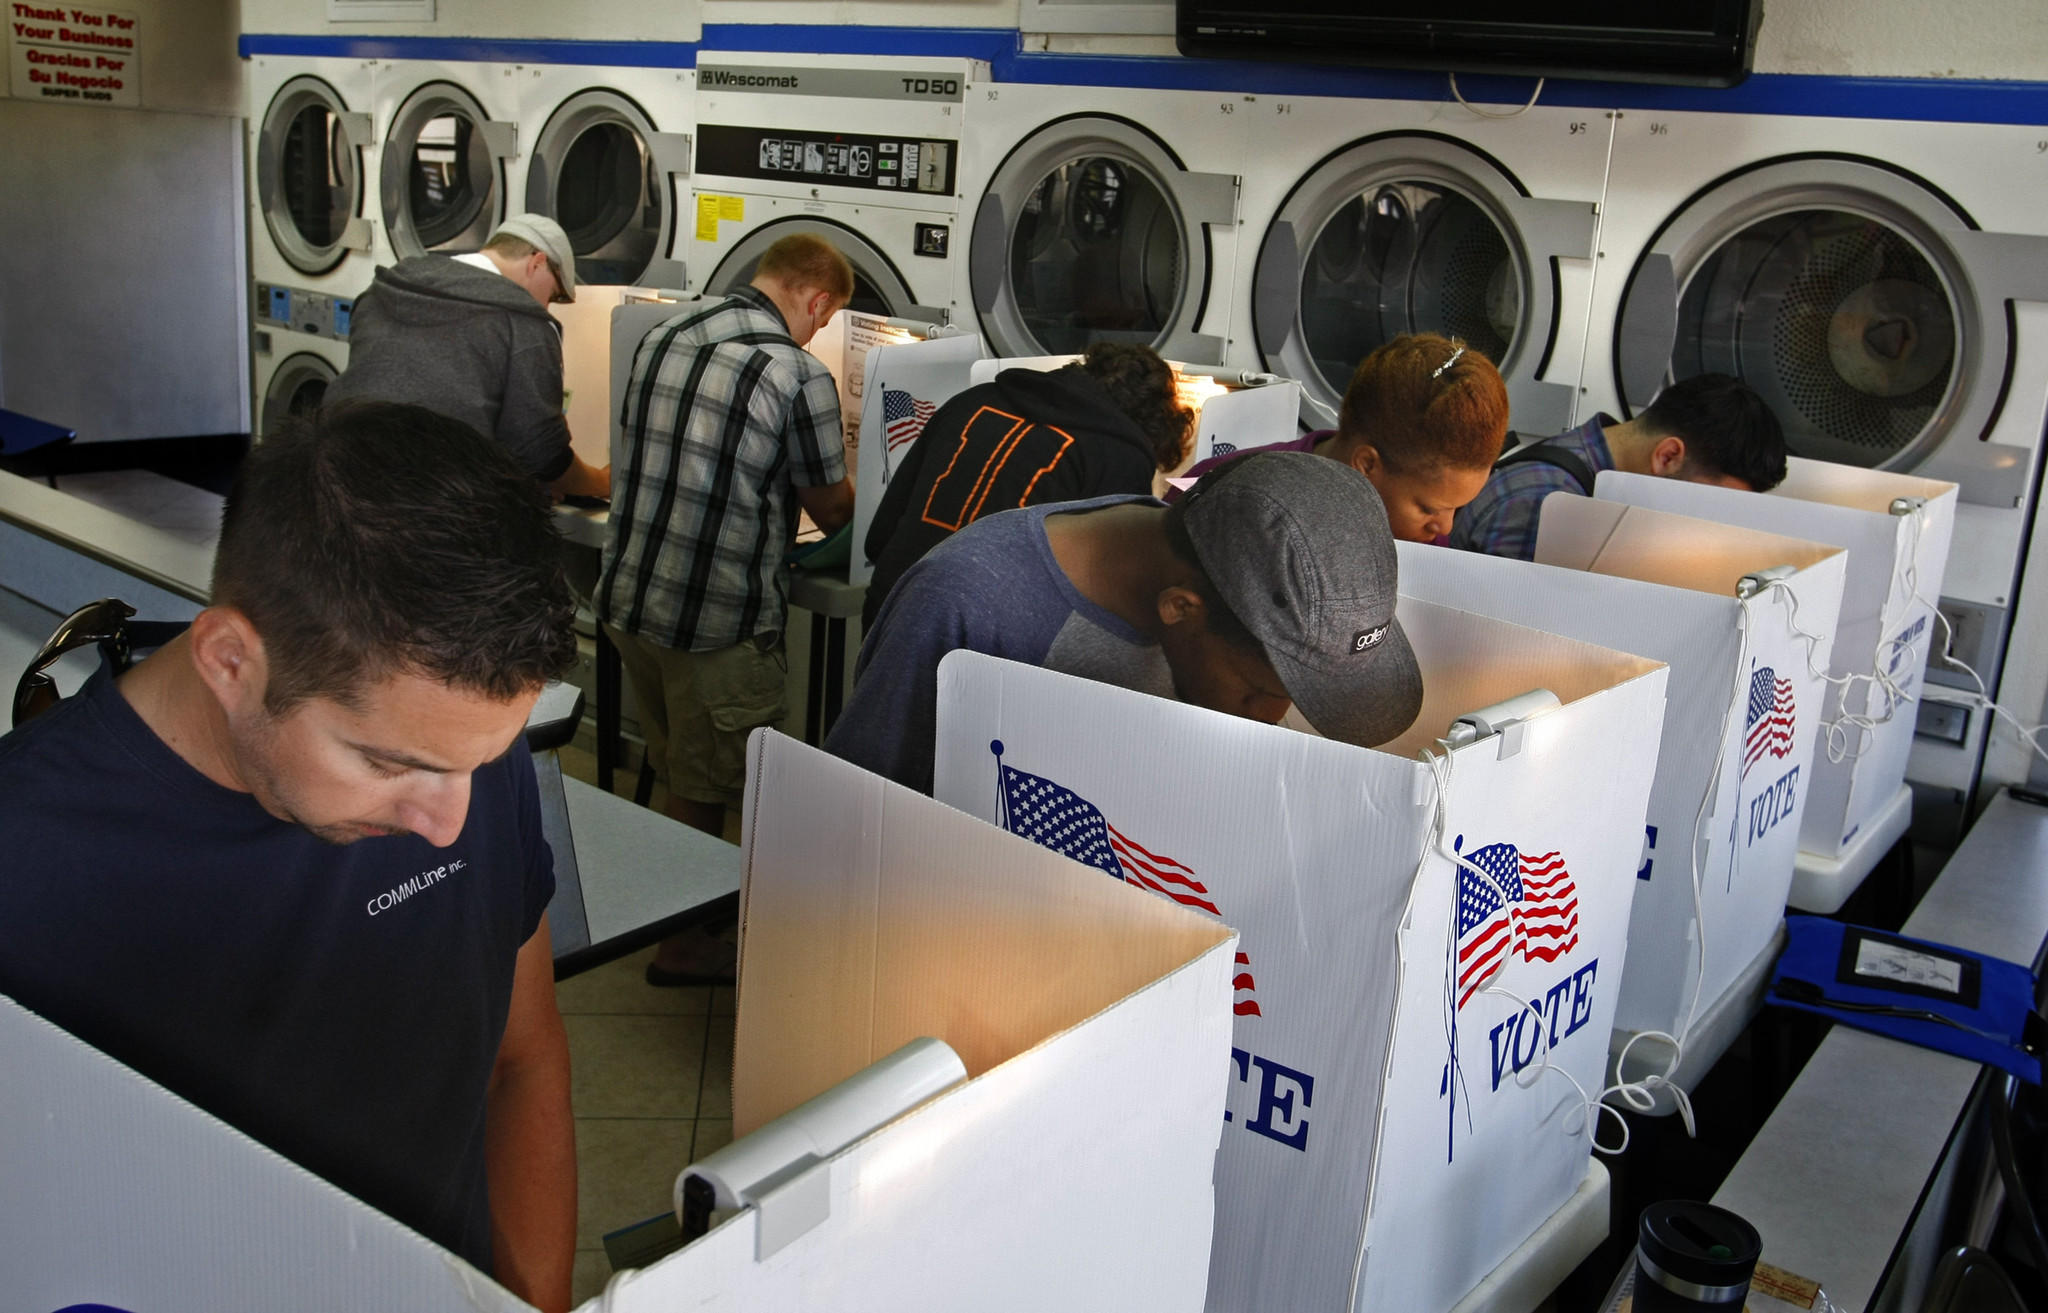 Voters huddle near dryers to mark their ballots at the Super Suds coin laundry in Long Beach, their precinct's polling place on Nov. 6, 2012.